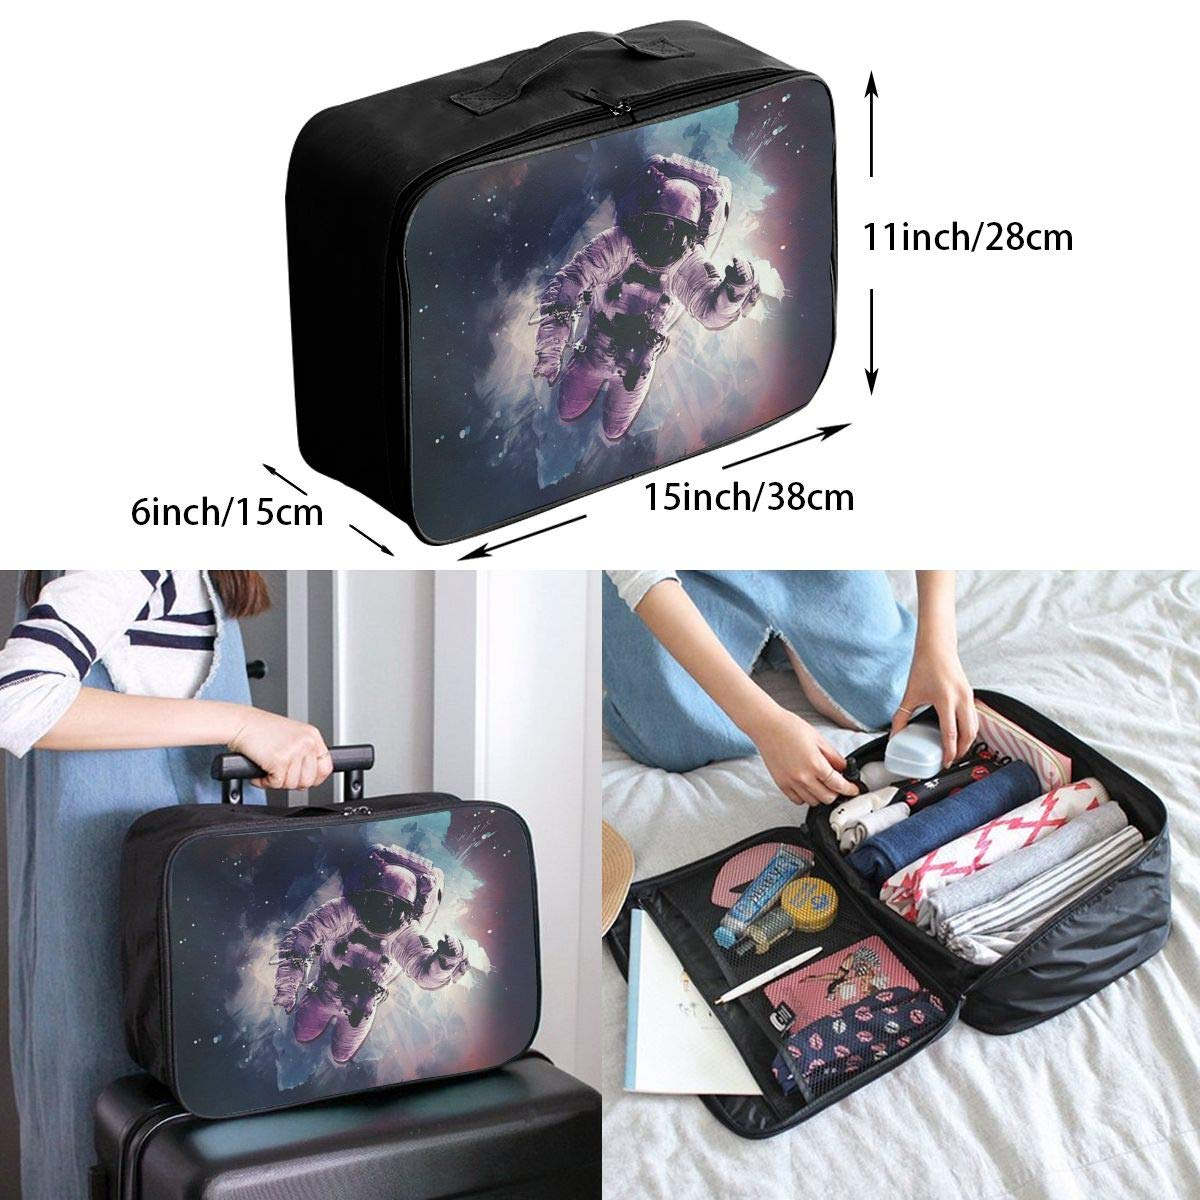 Travel Luggage Duffle Bag Lightweight Portable Handbag Fantasy Astronaut Pattern Large Capacity Waterproof Foldable Storage Tote